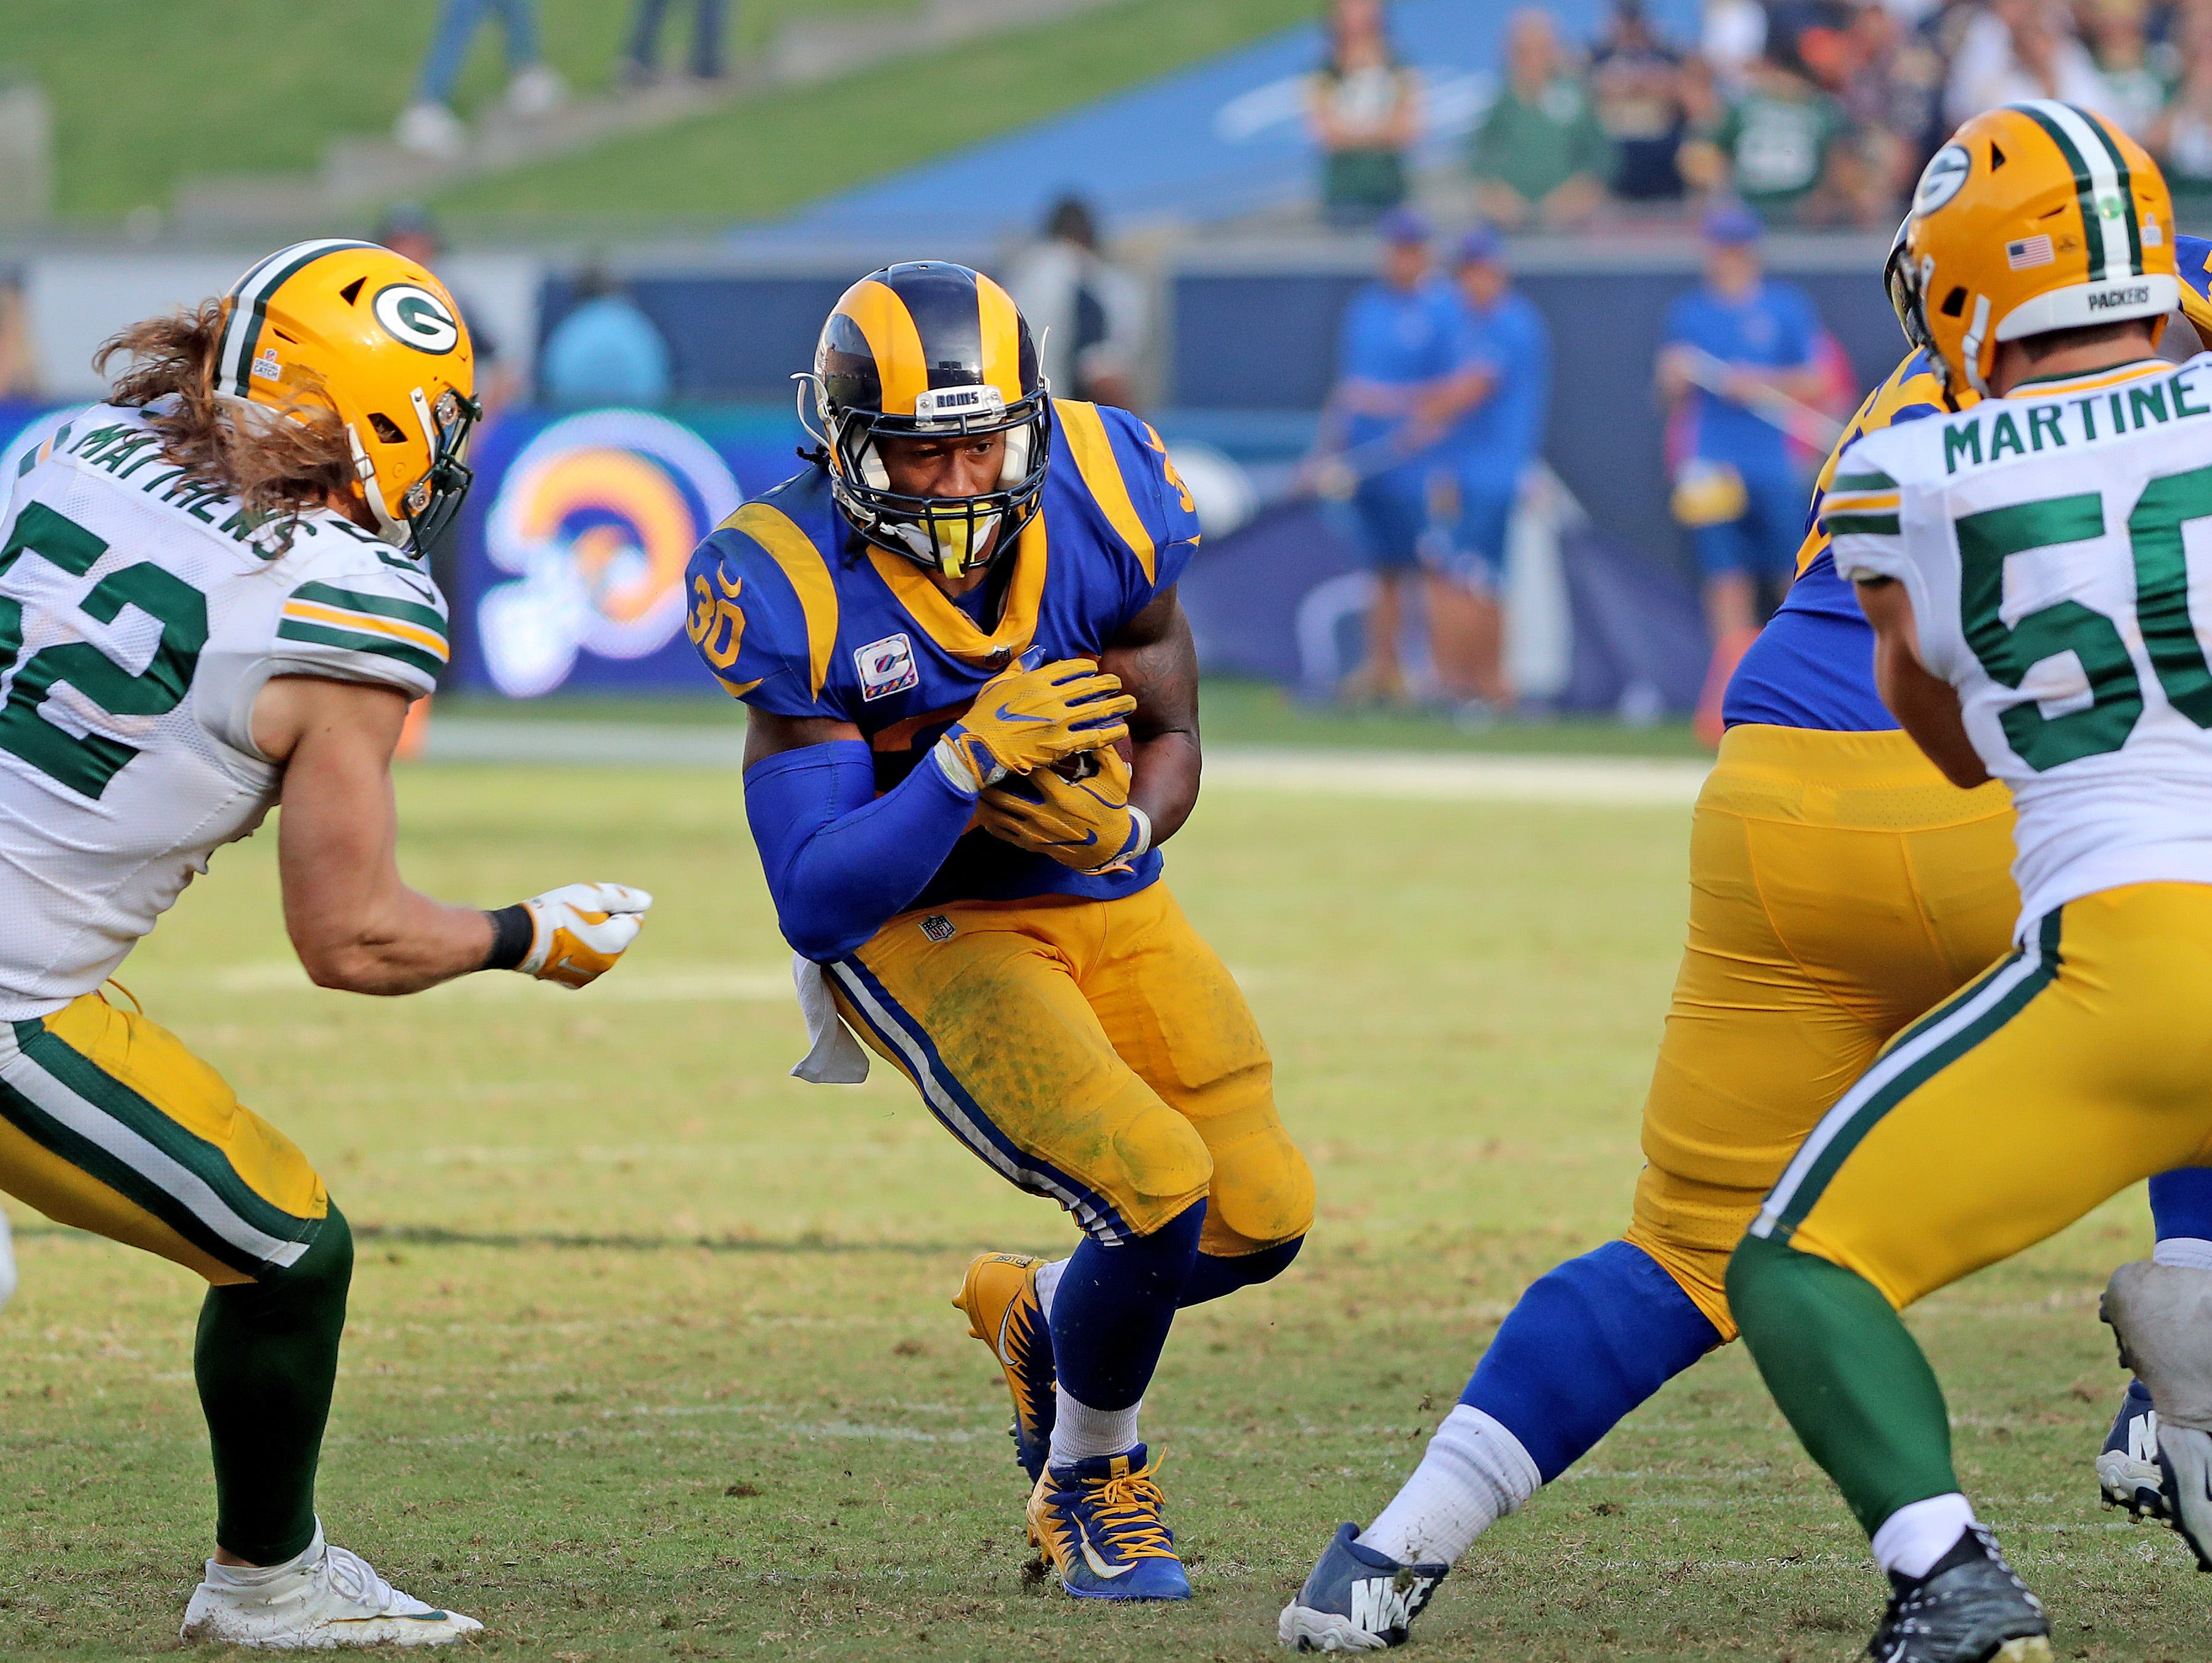 Green Bay Packers linebacker Clay Matthews (52) tries to close the hole against the LA Rams running back Todd Gurley (30) Sunday, October 28, 2018 at the Memorial Coliseum in Los Angeles.